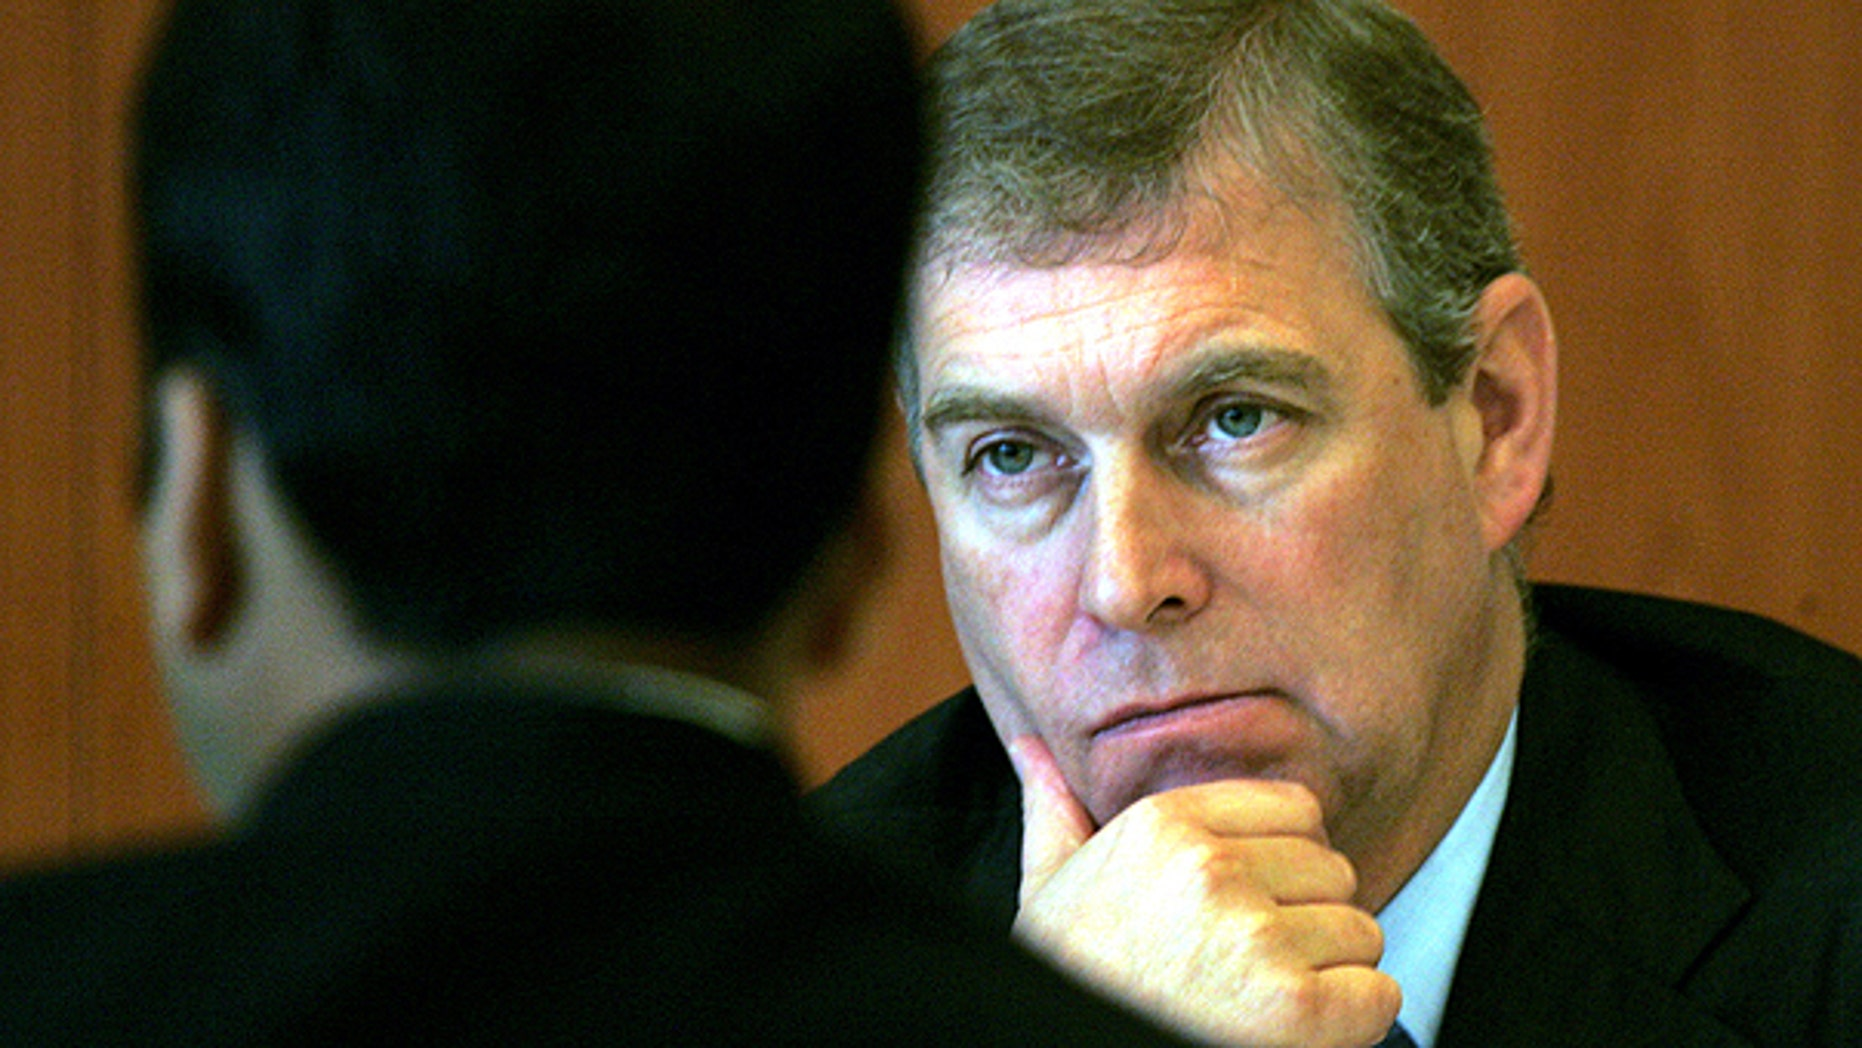 In this Monday, Oct. 30, 2006 file photo Prince Andrew, The Duke of York and U.K. Special Representative for International Trade and Investment, gestures during a luncheon session in his honor, organized by Indian Chambers of Commerce and Industries in New Delhi, India.